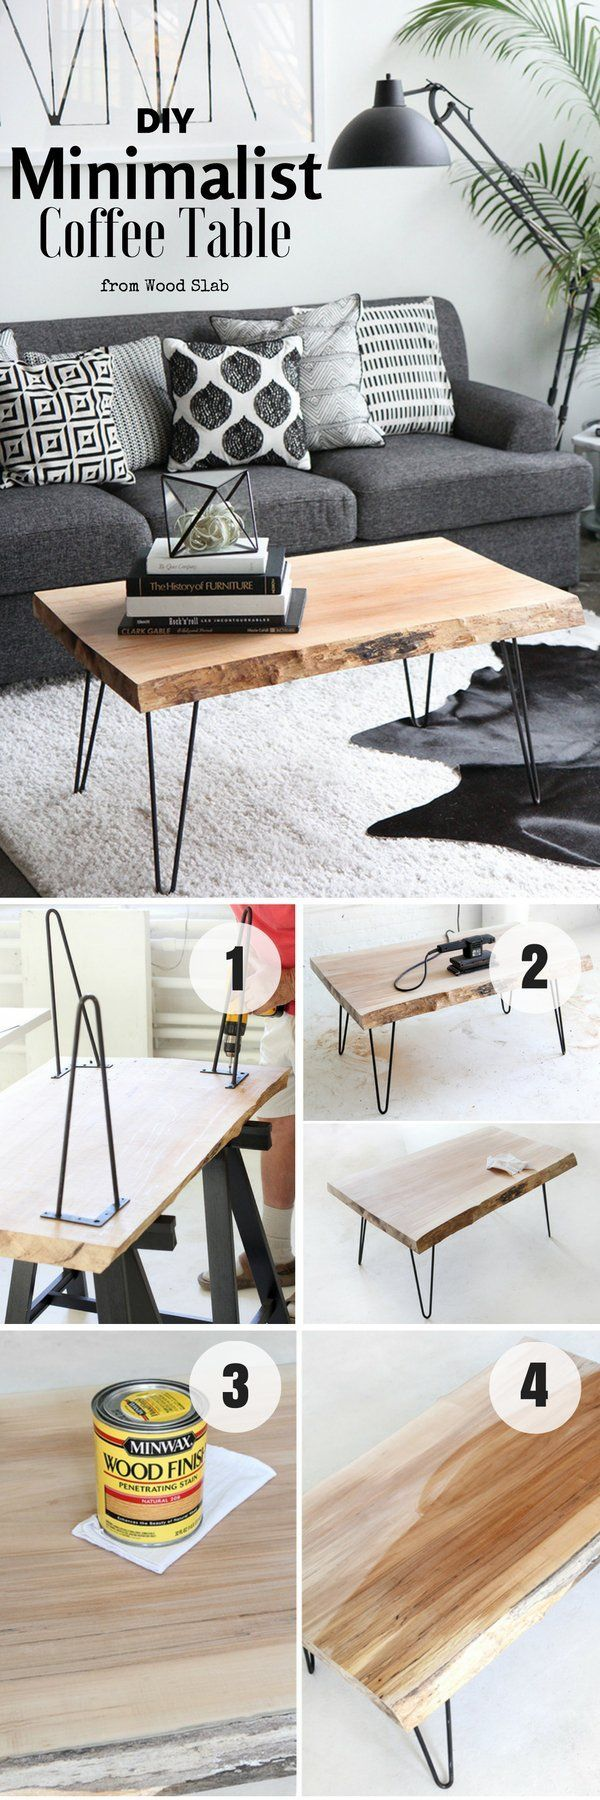 More ideas below: DIY Wooden Coffee table Square Crate Ideas Rustic Coffee  table With Small